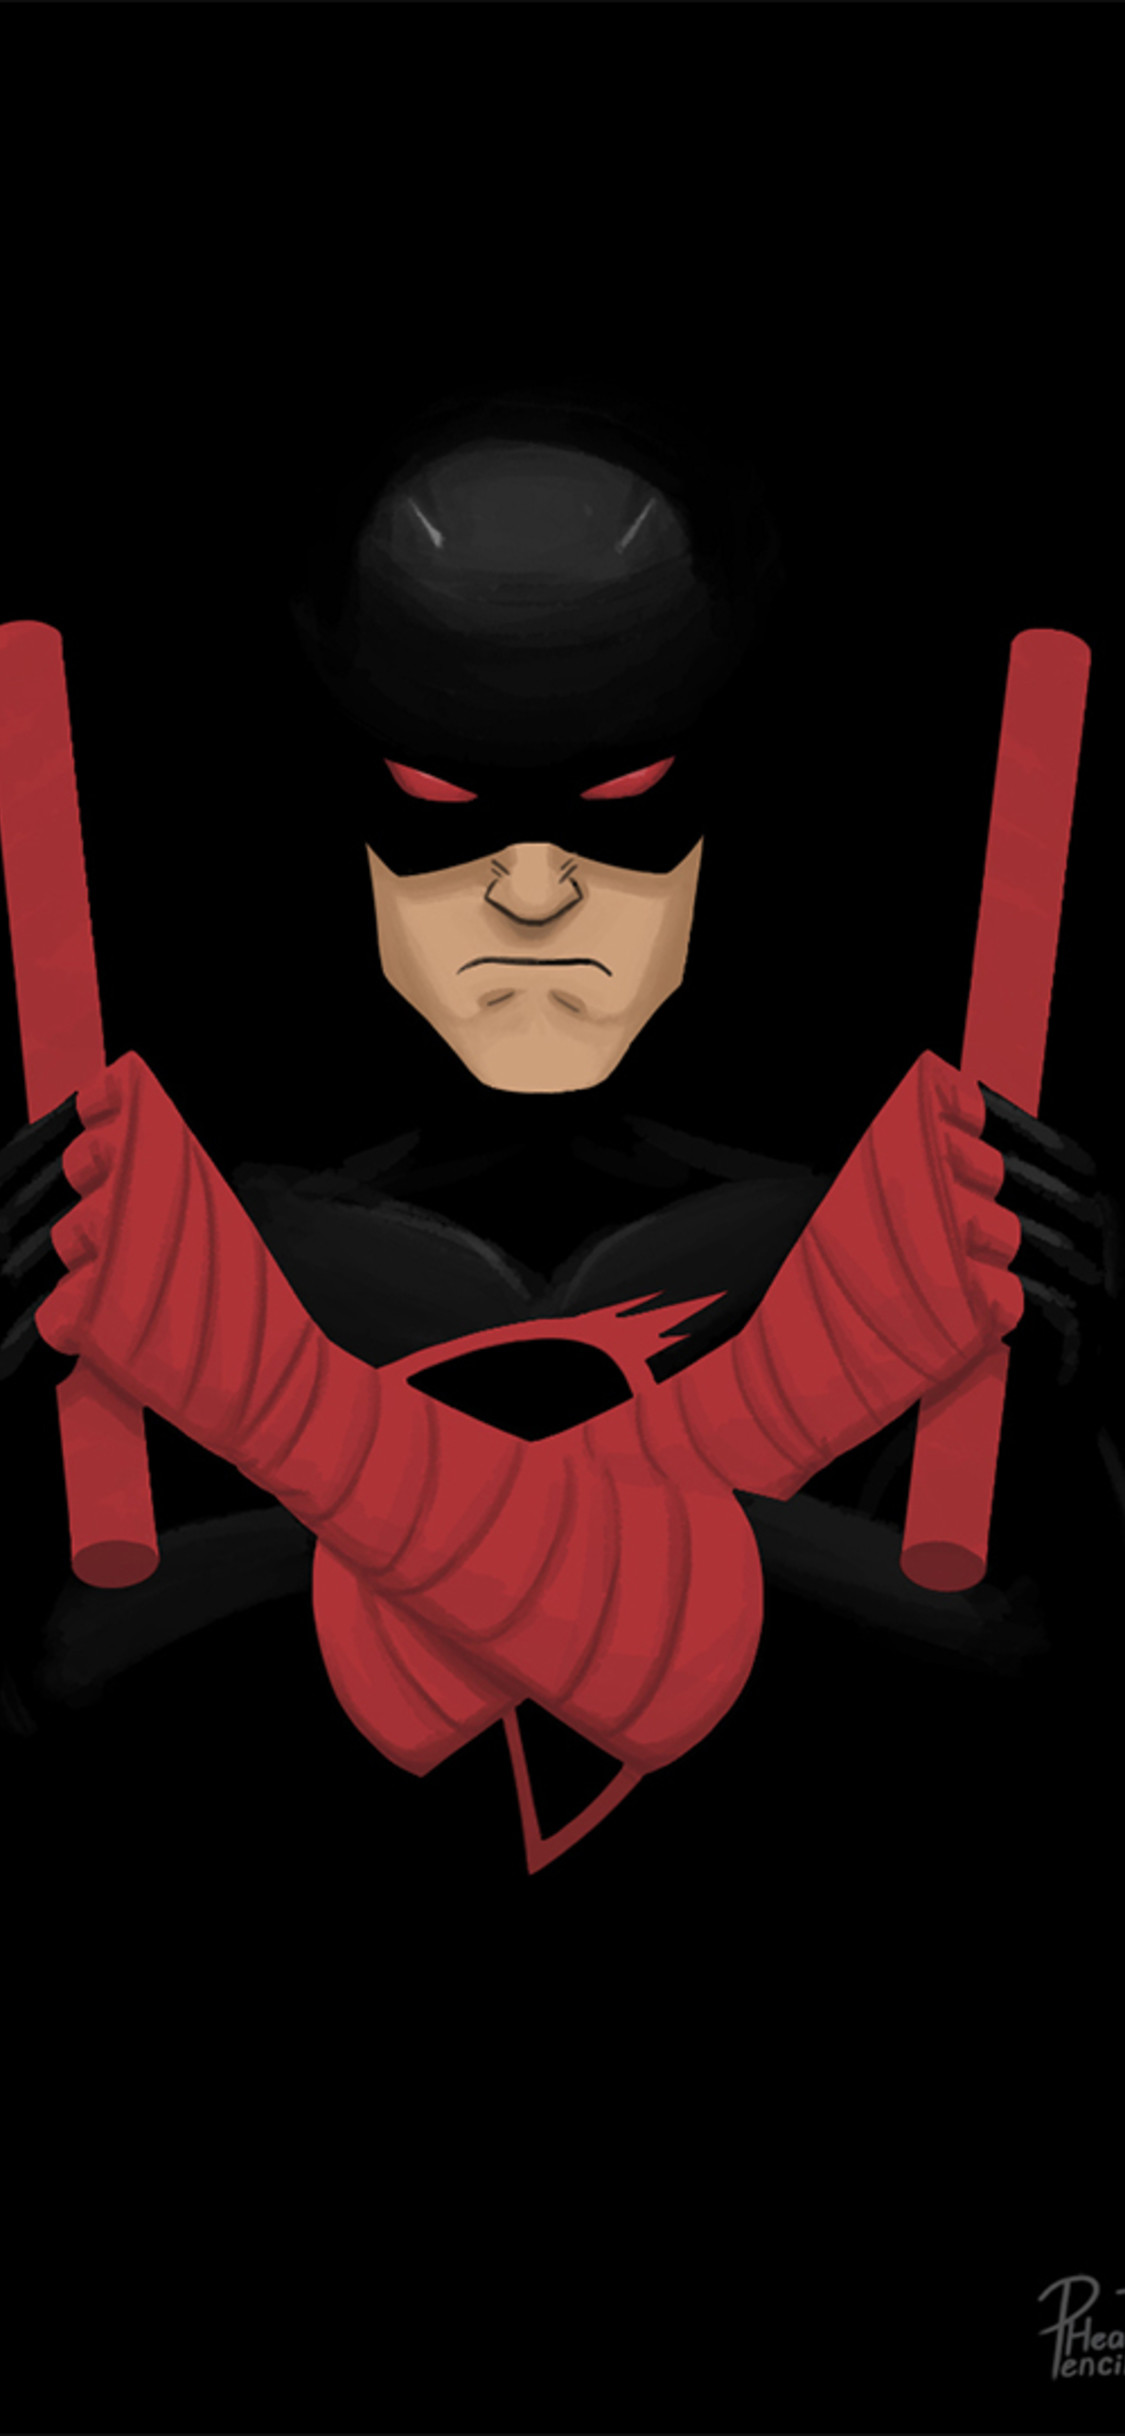 Res: 1125x2436, shadowland-daredevil-artwork-bi.jpg